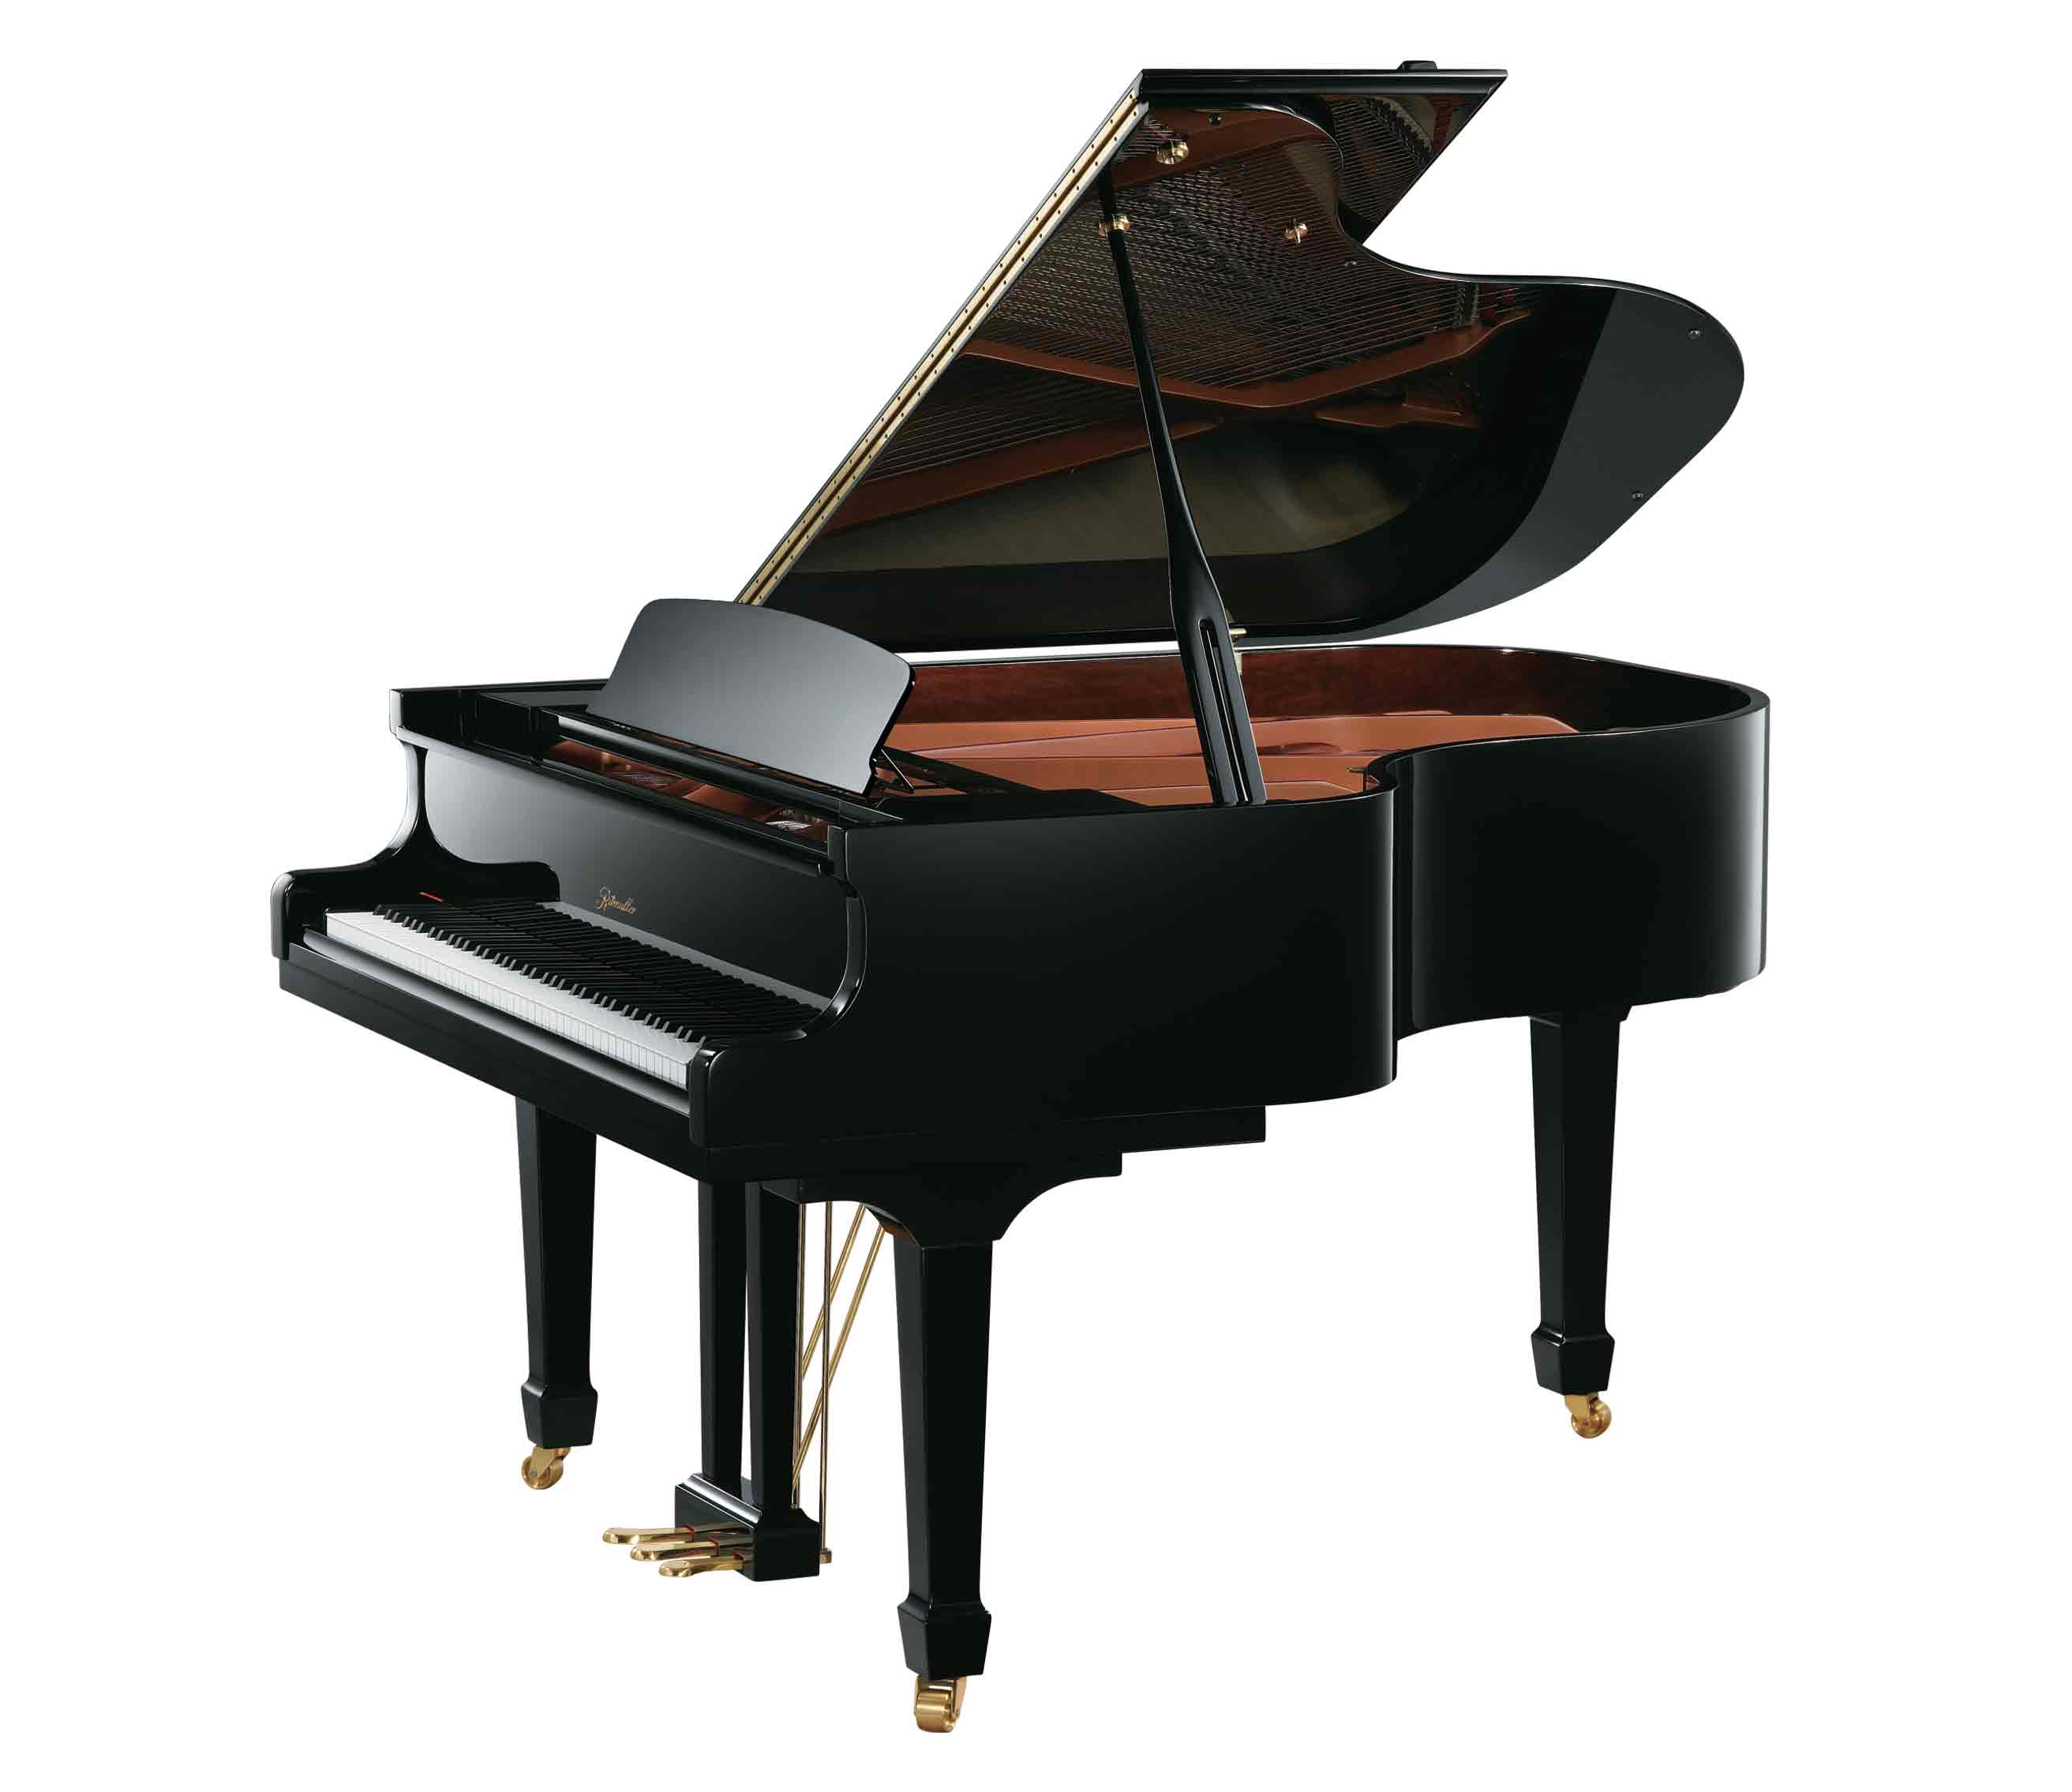 Ritmuller Pianos are available in Miller Piano Specialists